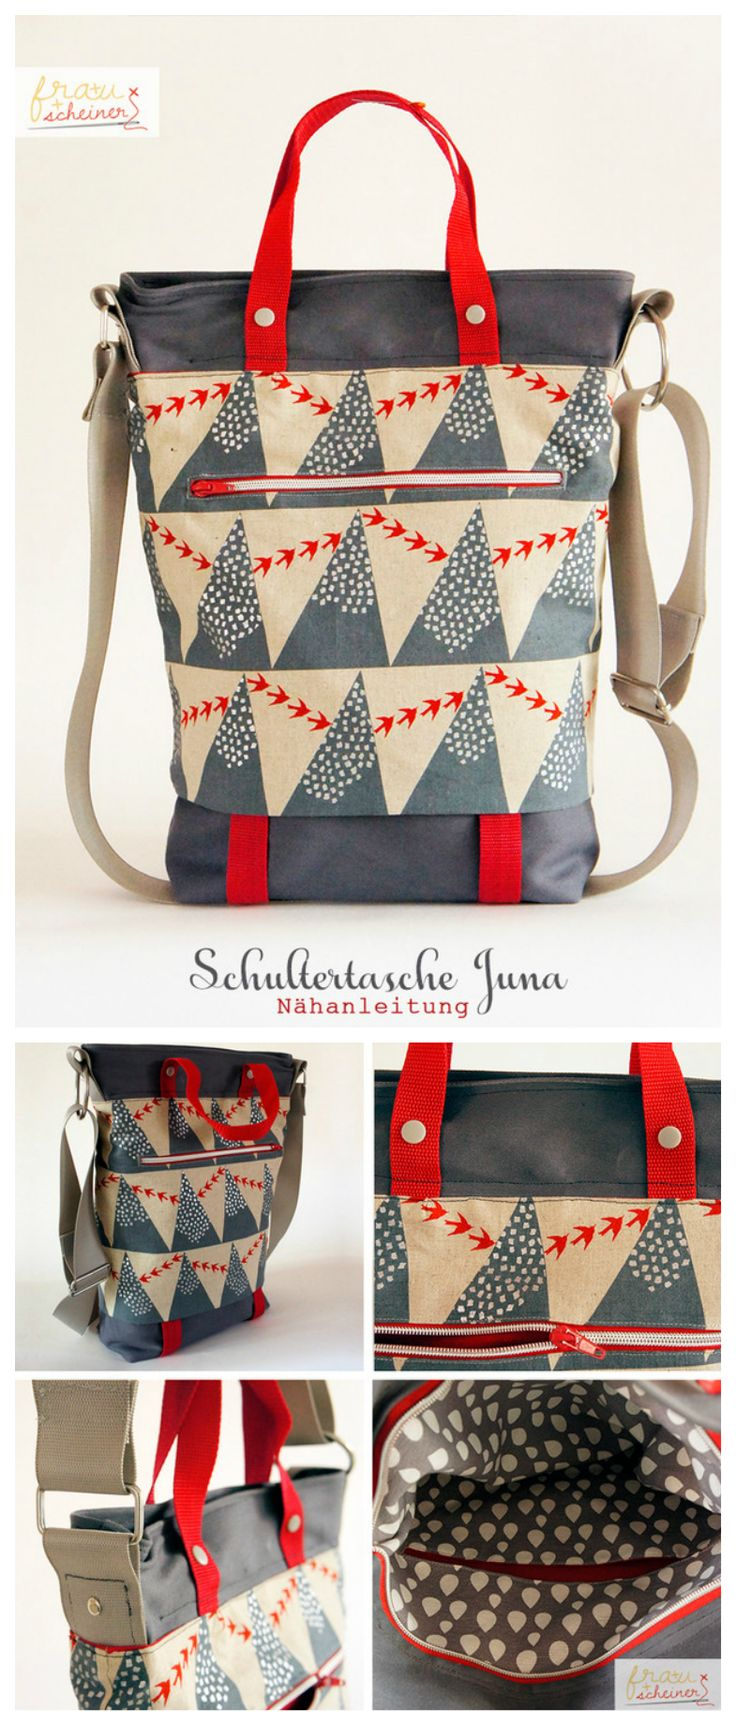 Nähanleitung für eine praktische Schultertasche im Shopper Bag Design / sew your own shopper bag with this diy sewing pattern made by frauscheinerEbooks via DaWanda.com